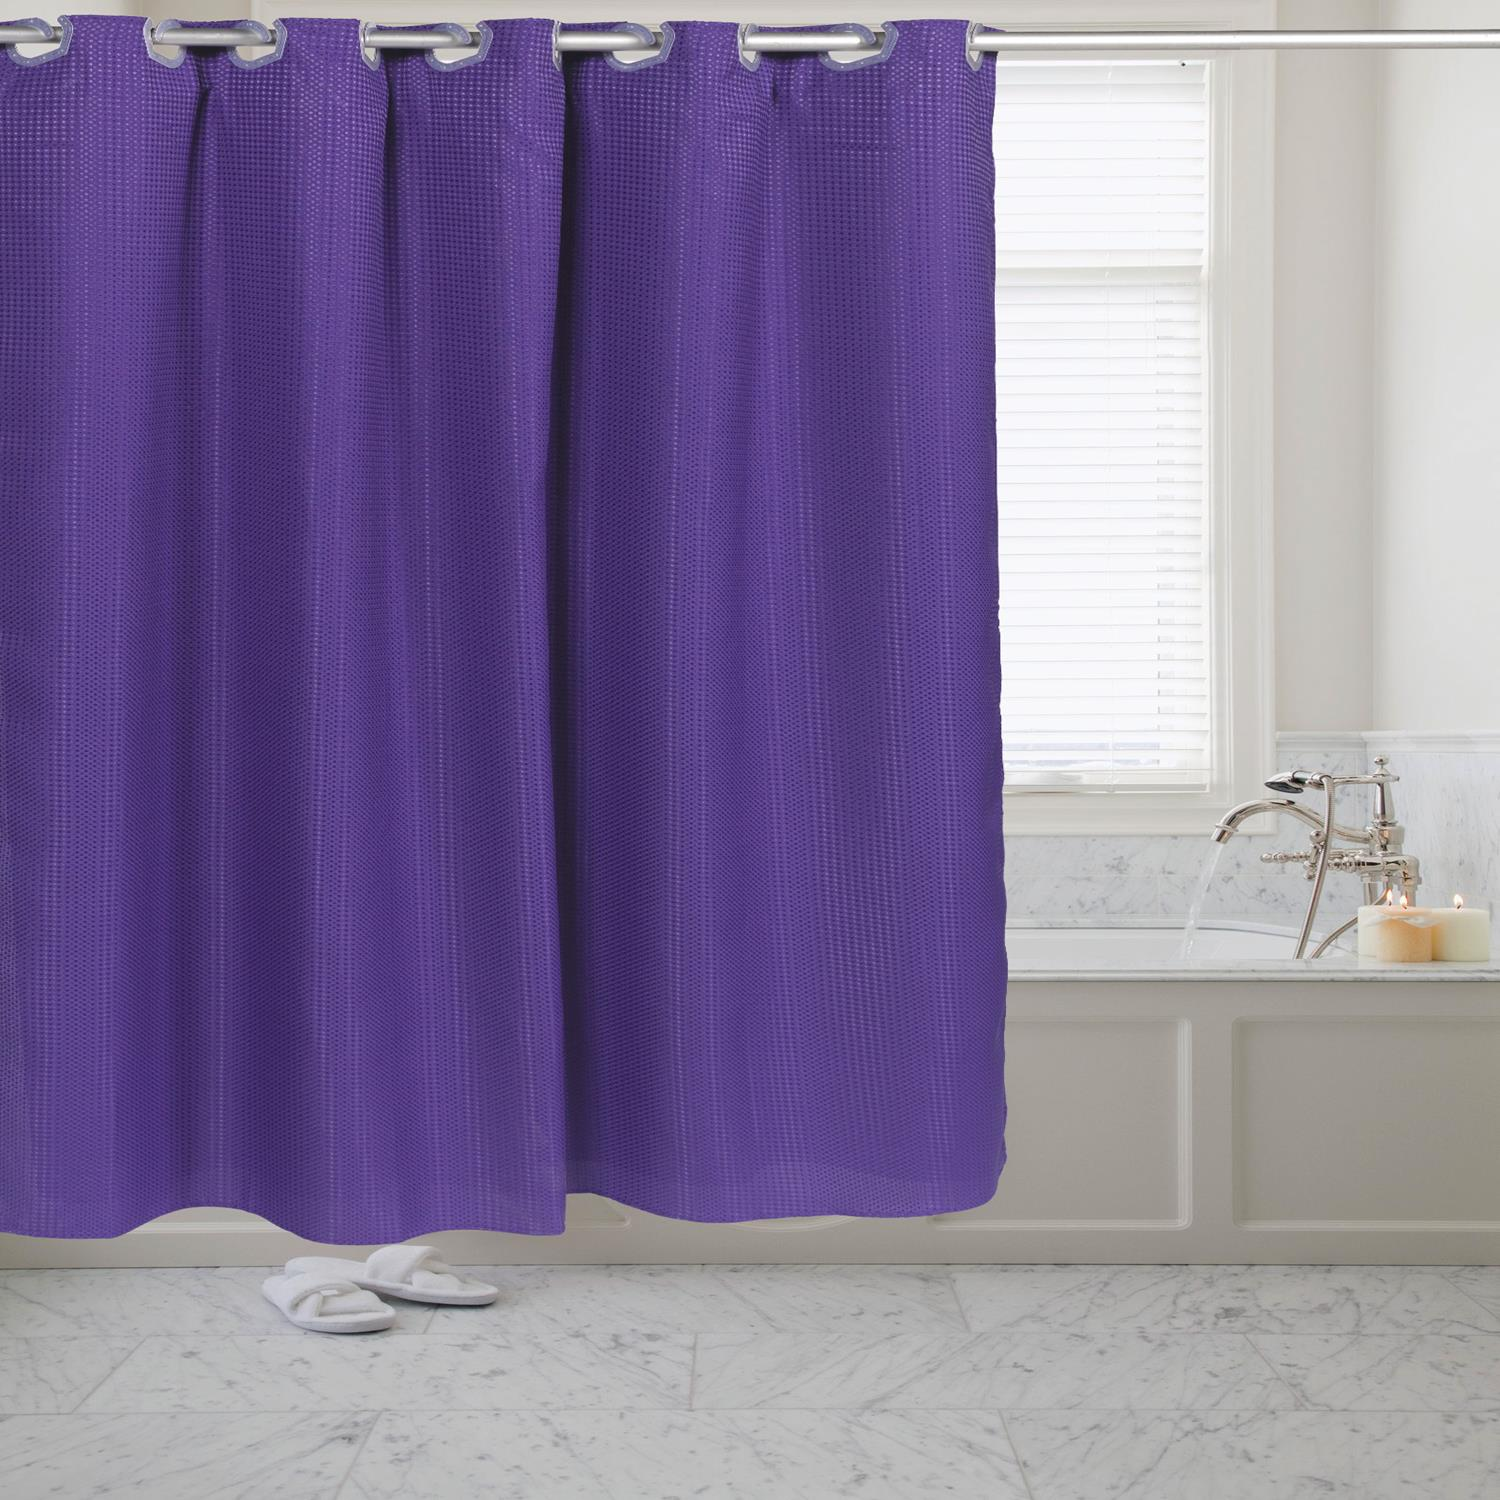 Details About Carnation Home Pre Hookedt Waffle Weave Fabric Shower Curtain In Purple